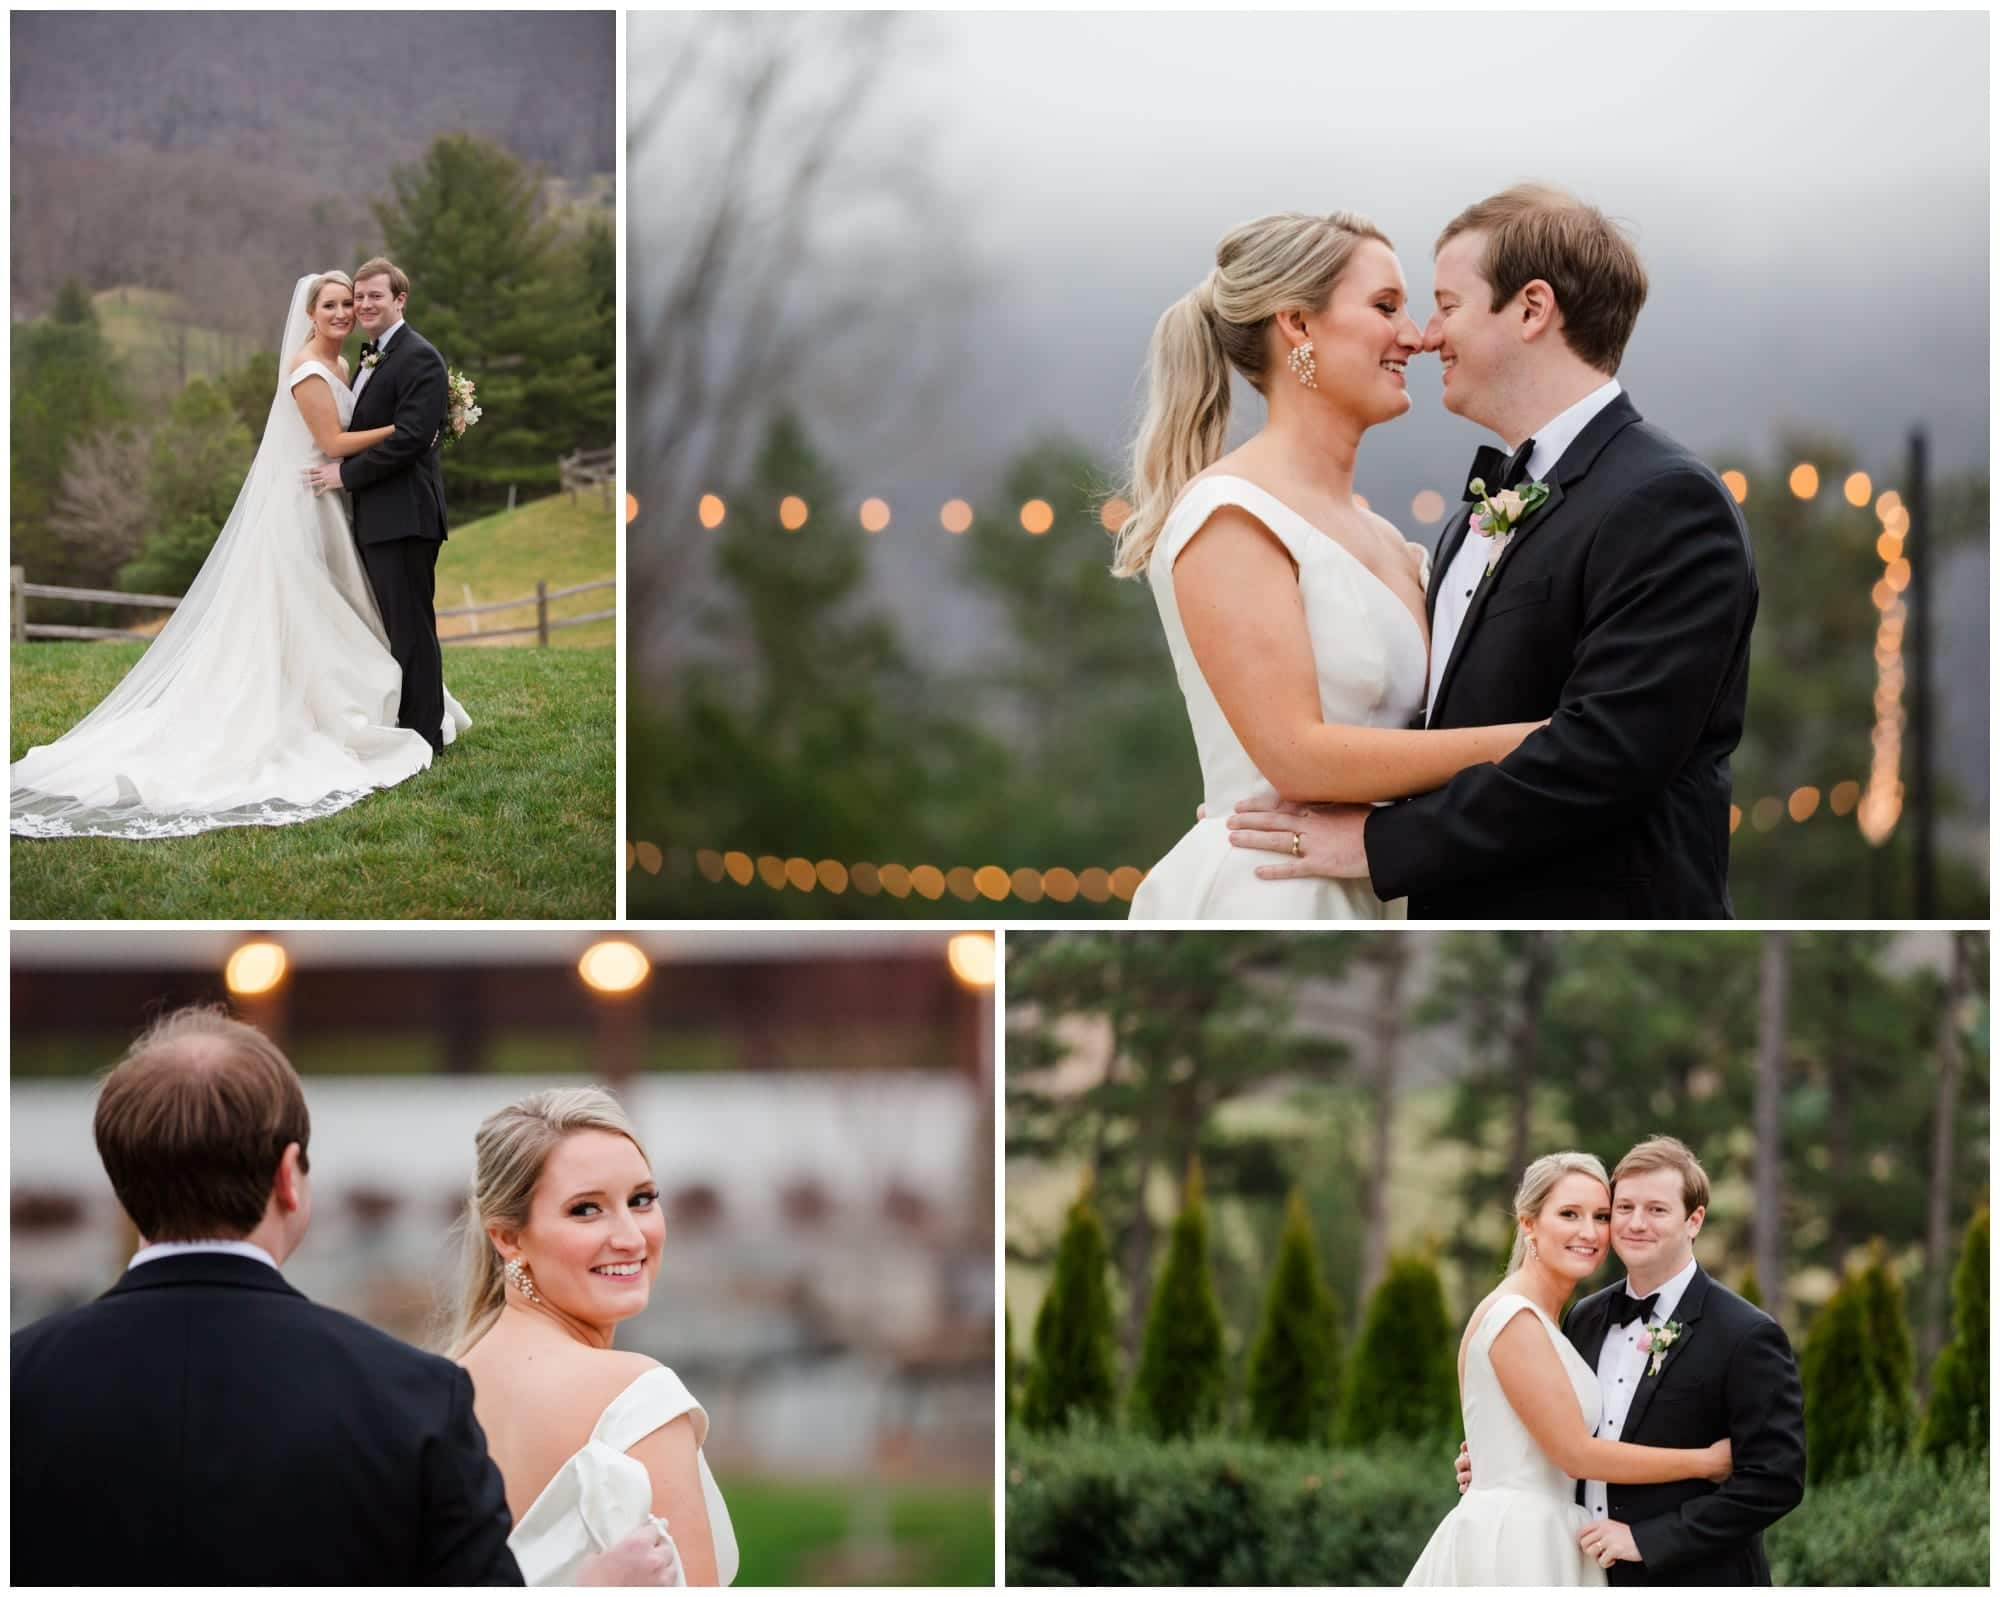 Bride and Groom photos with greenery in the background